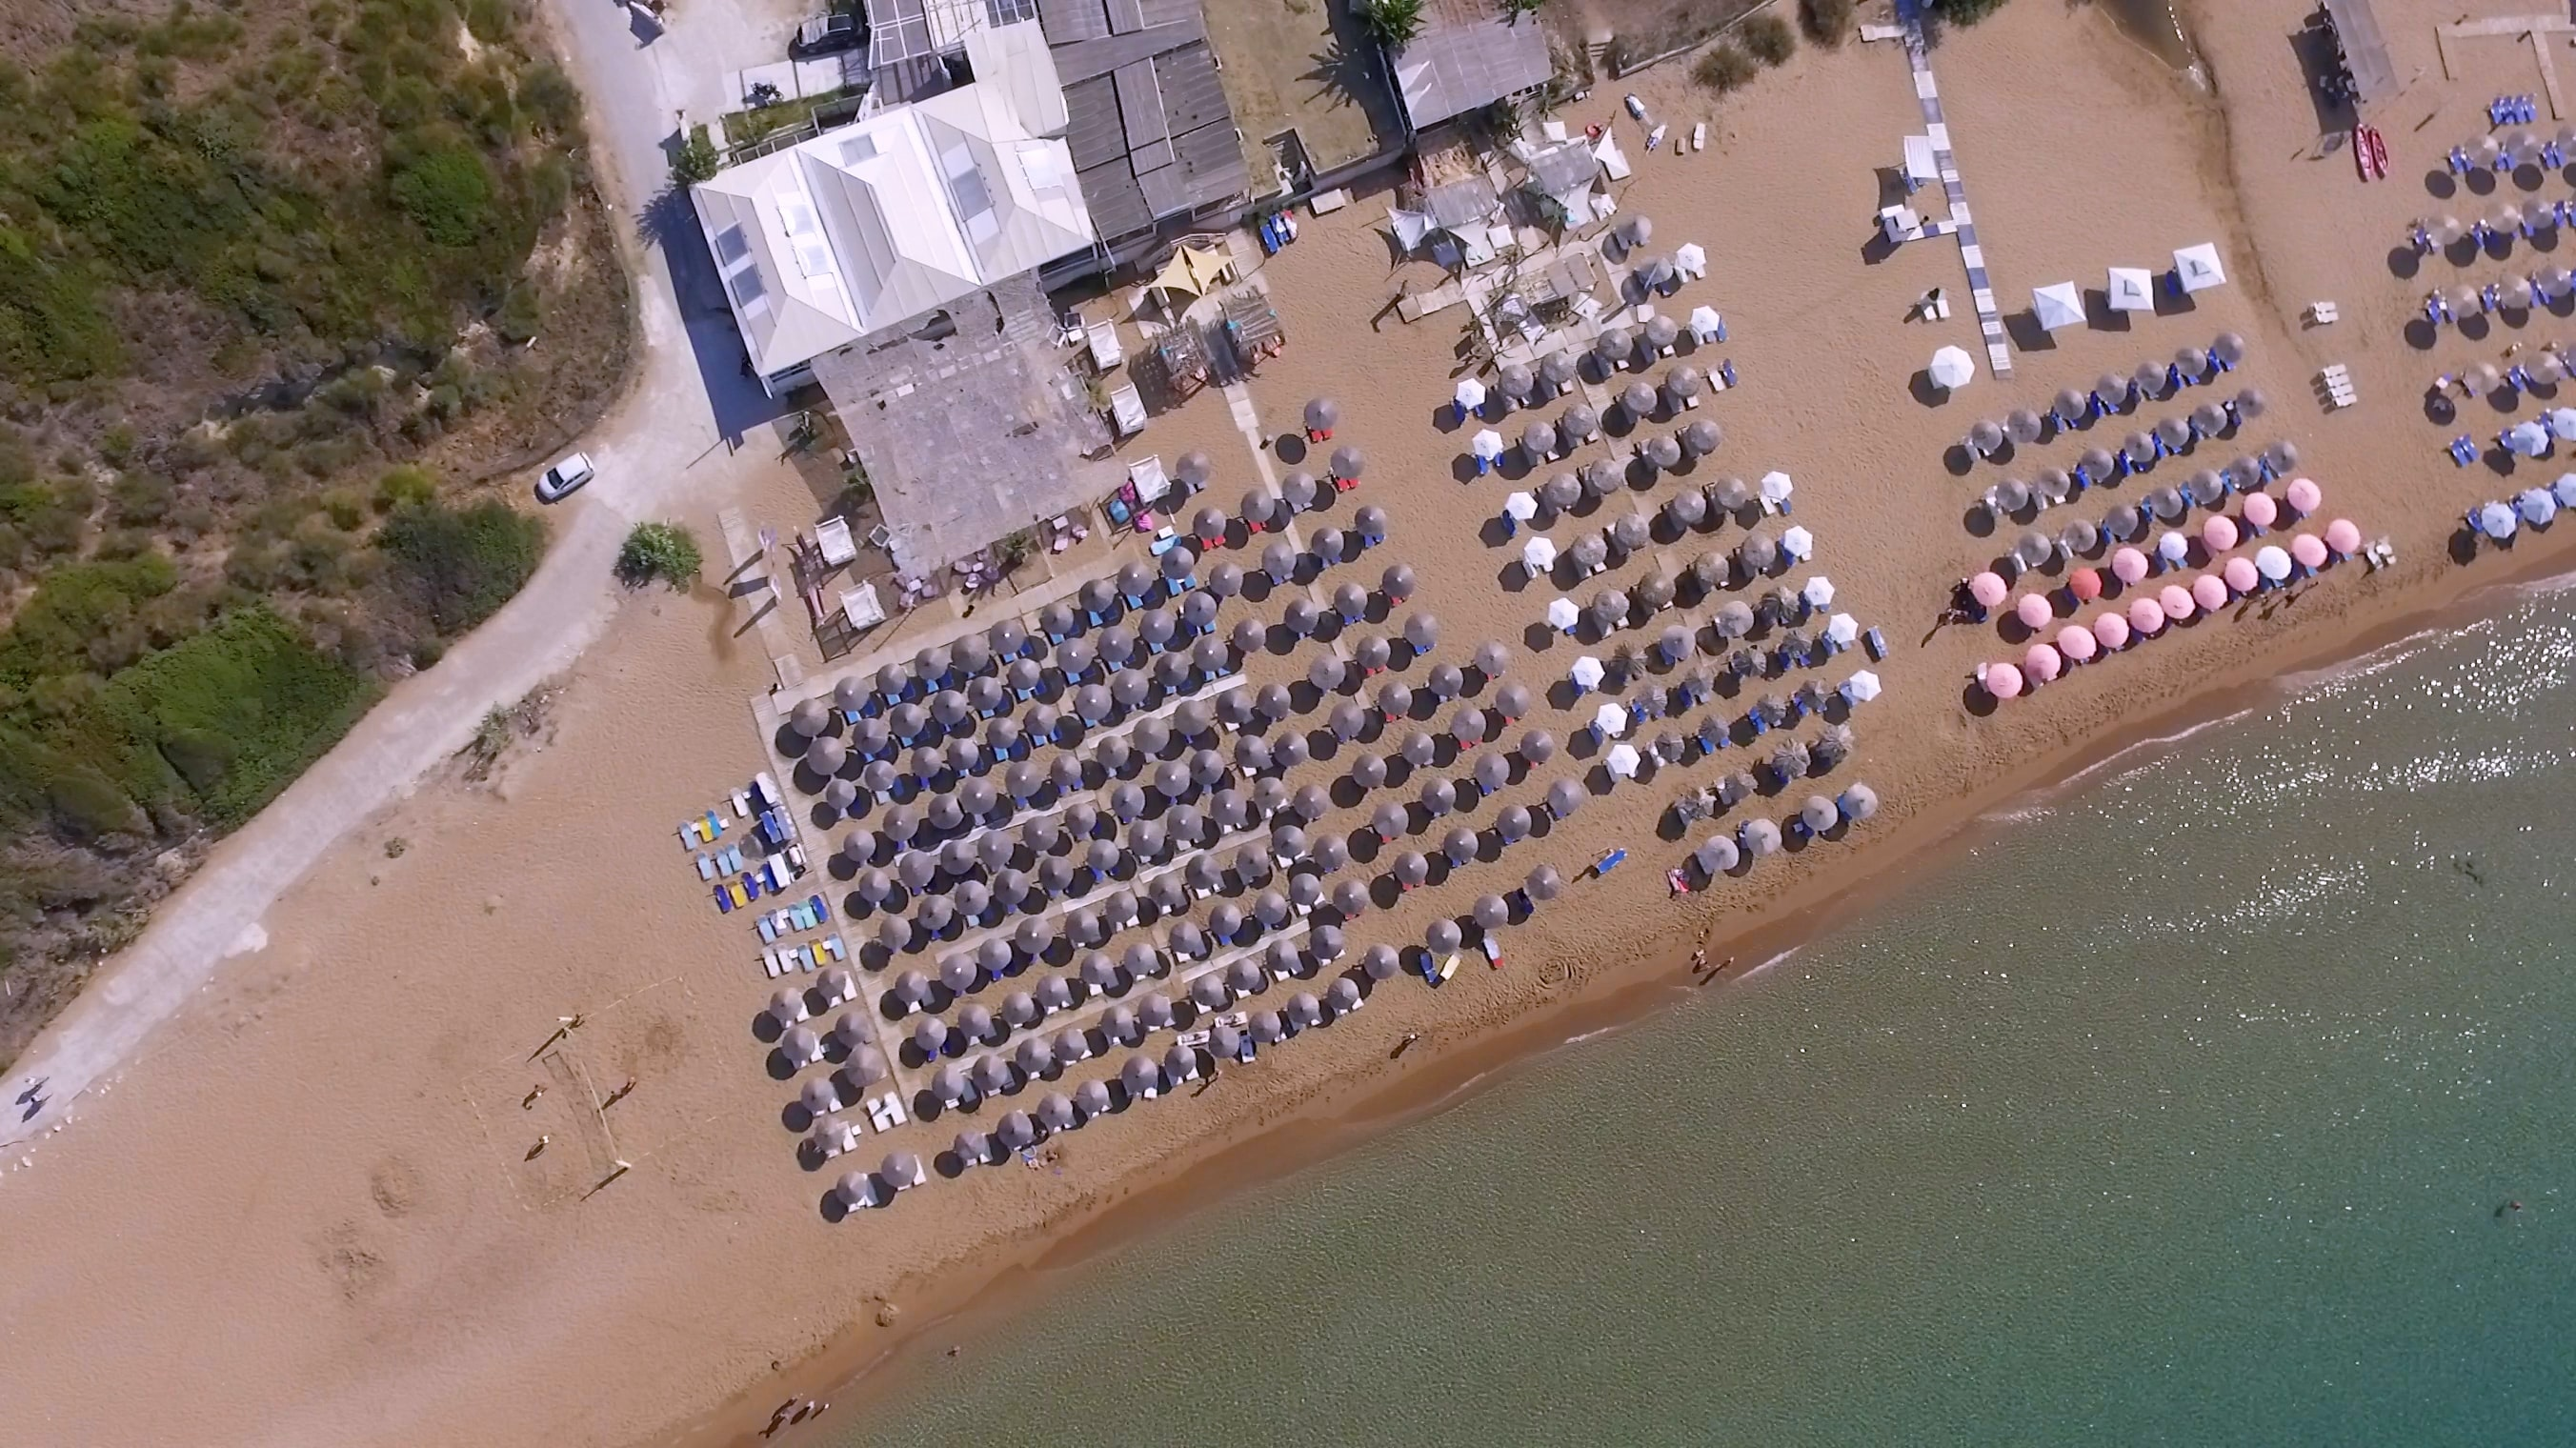 aerial photo of umbrellas near calm body of water at daytime